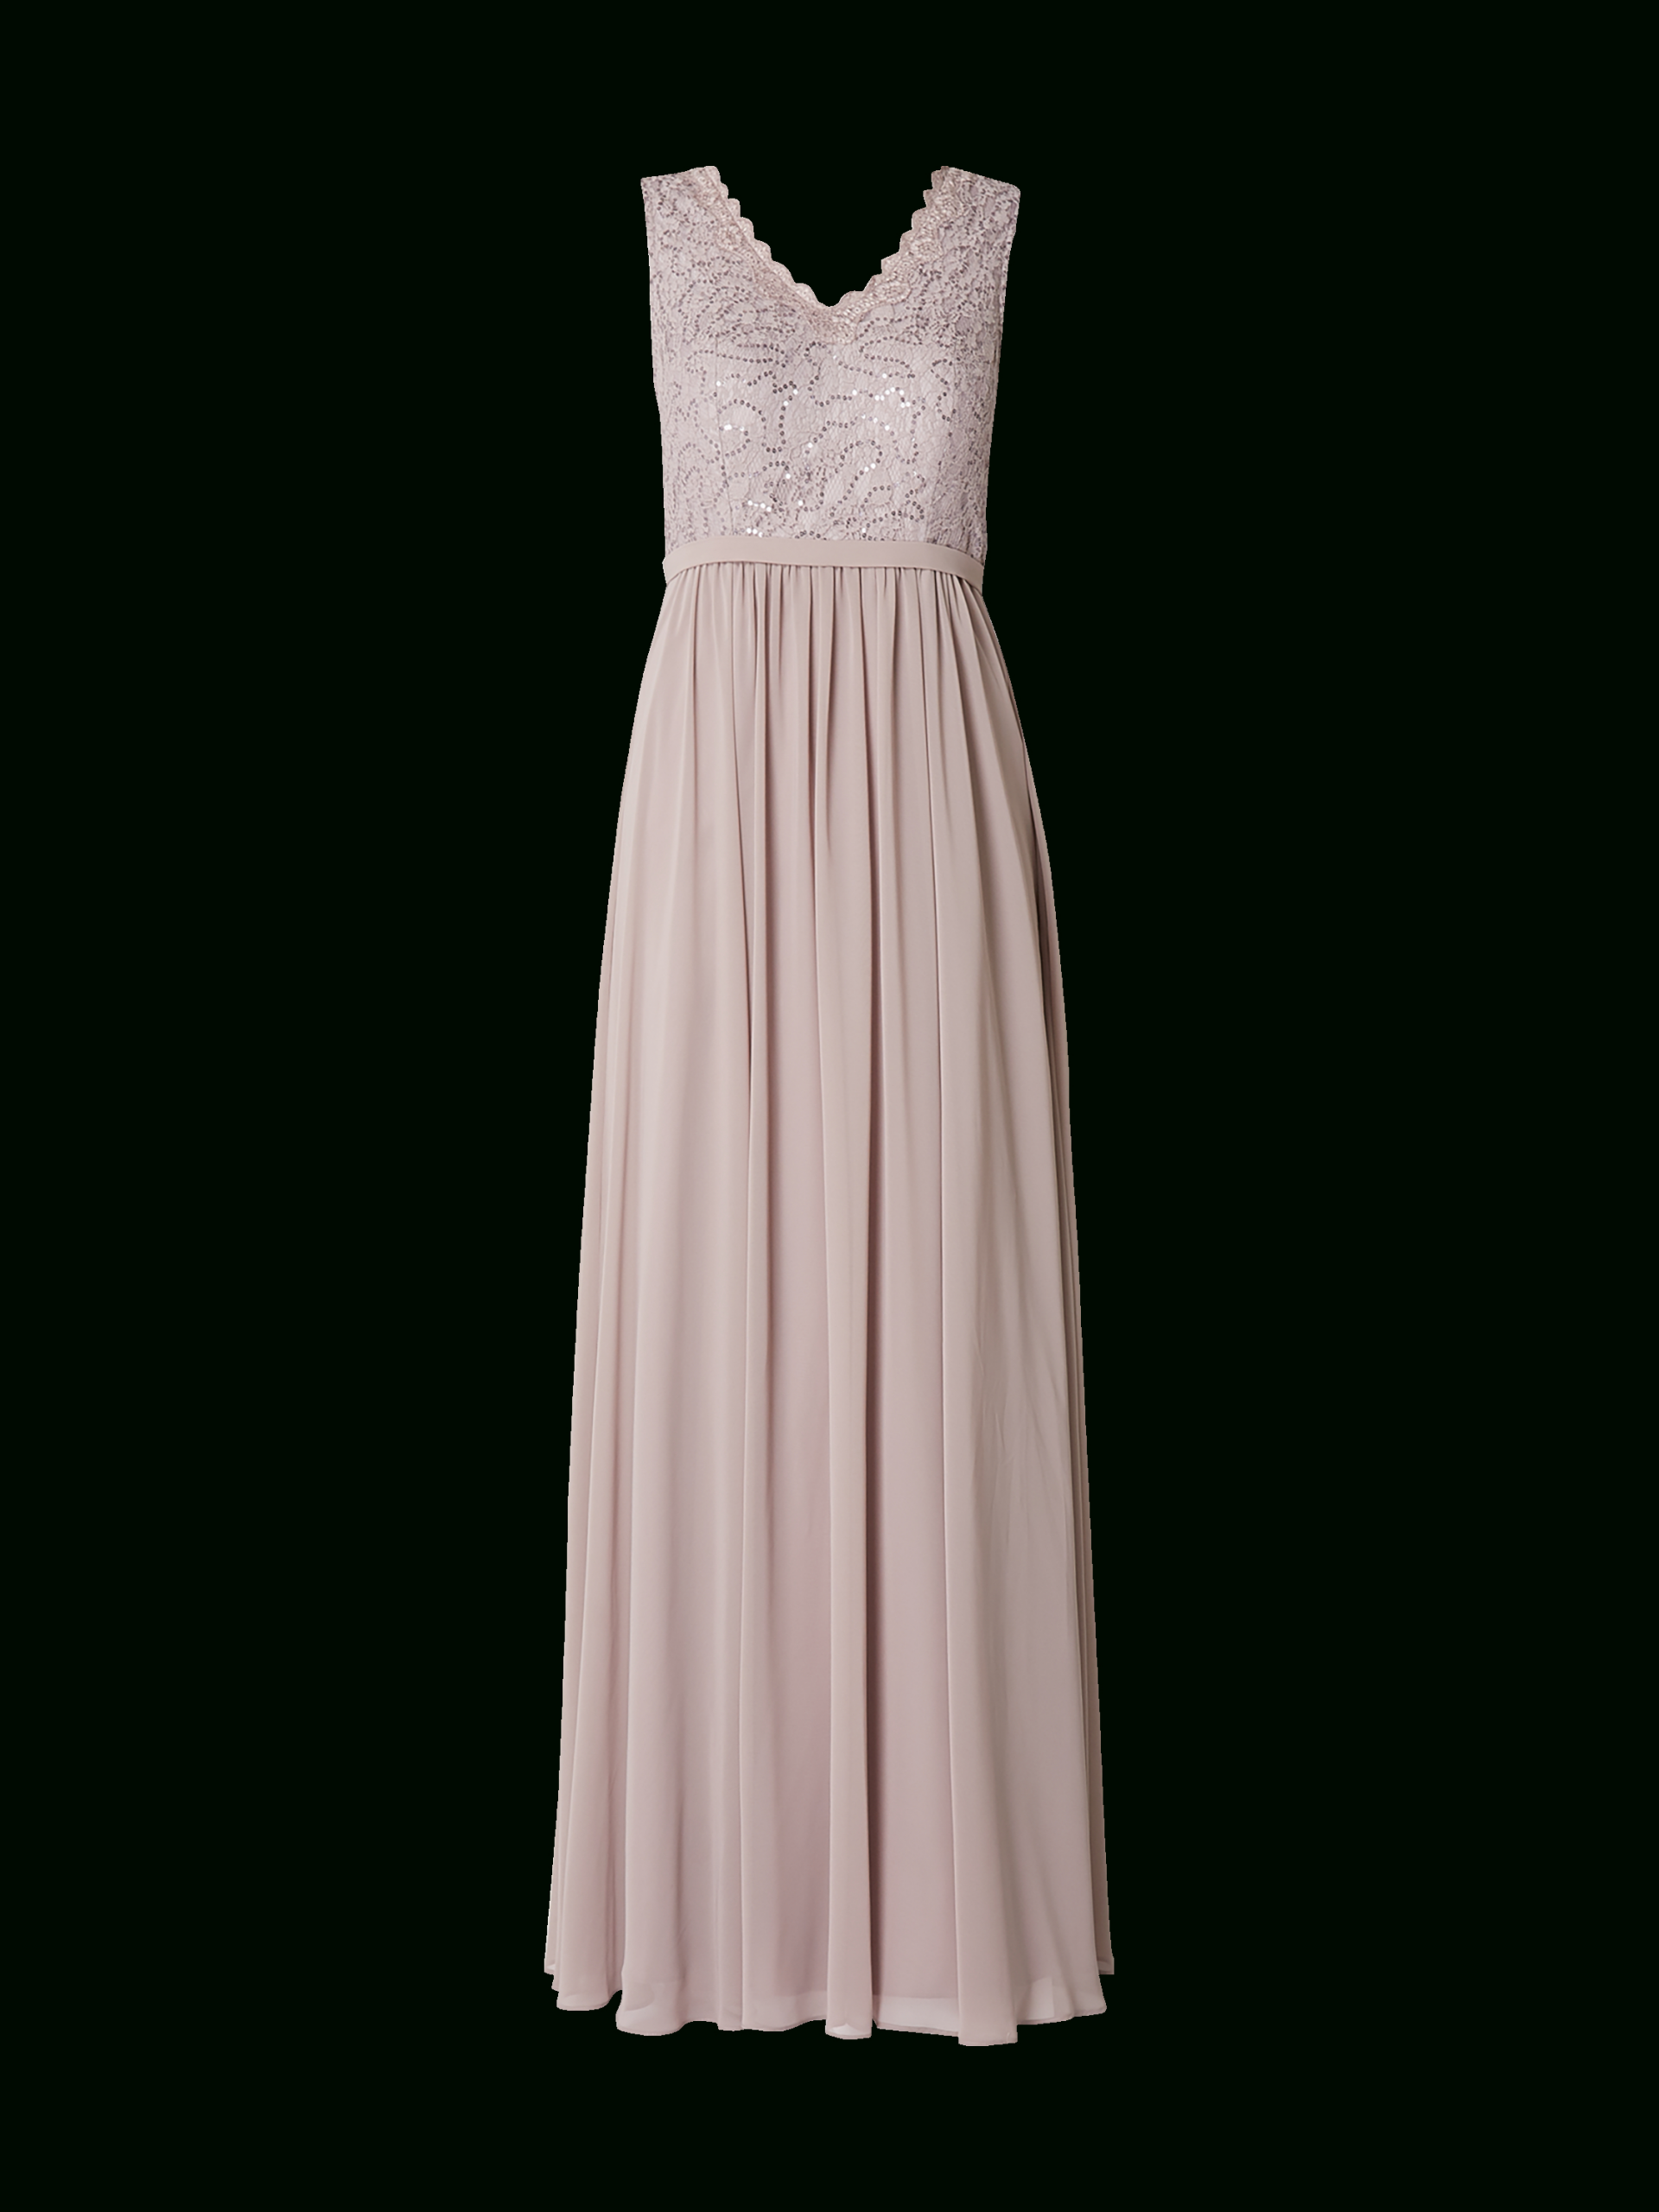 Formal Schön Christian Berg Abendkleid Ärmel - Abendkleid